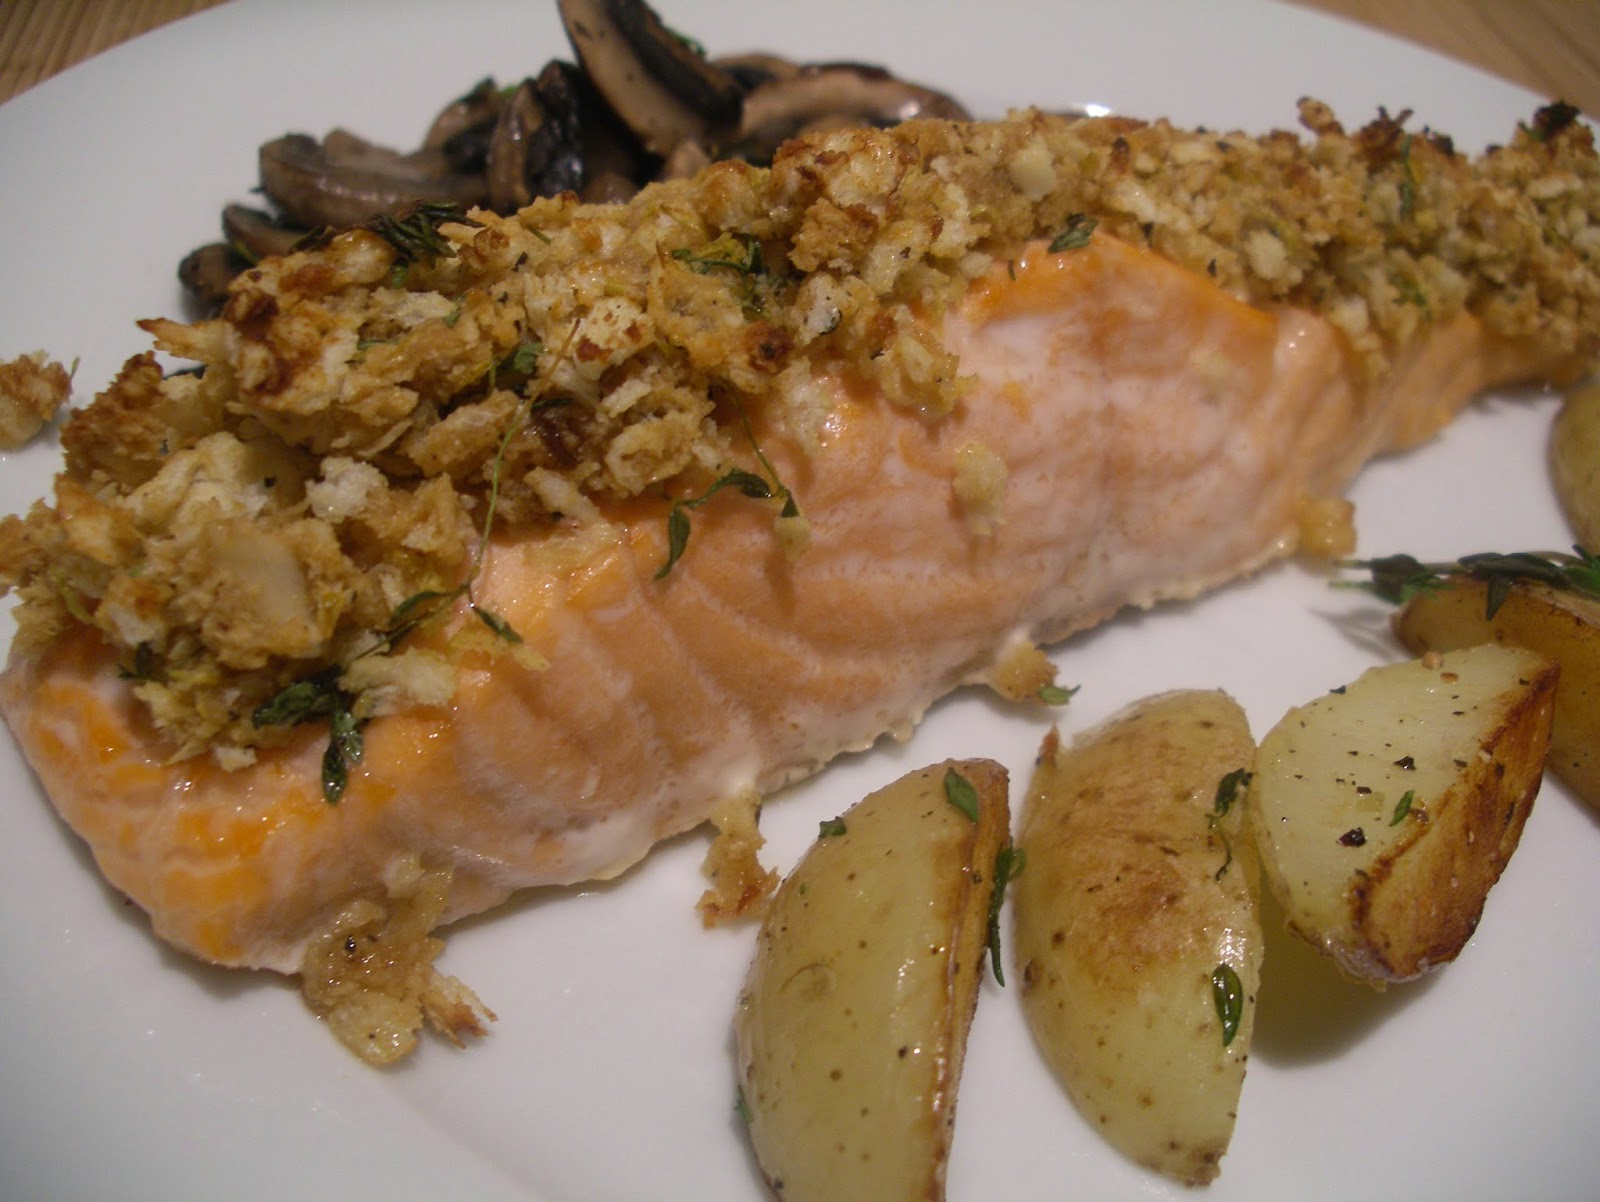 Oven- roasted salmon with a mustard and herbs crust